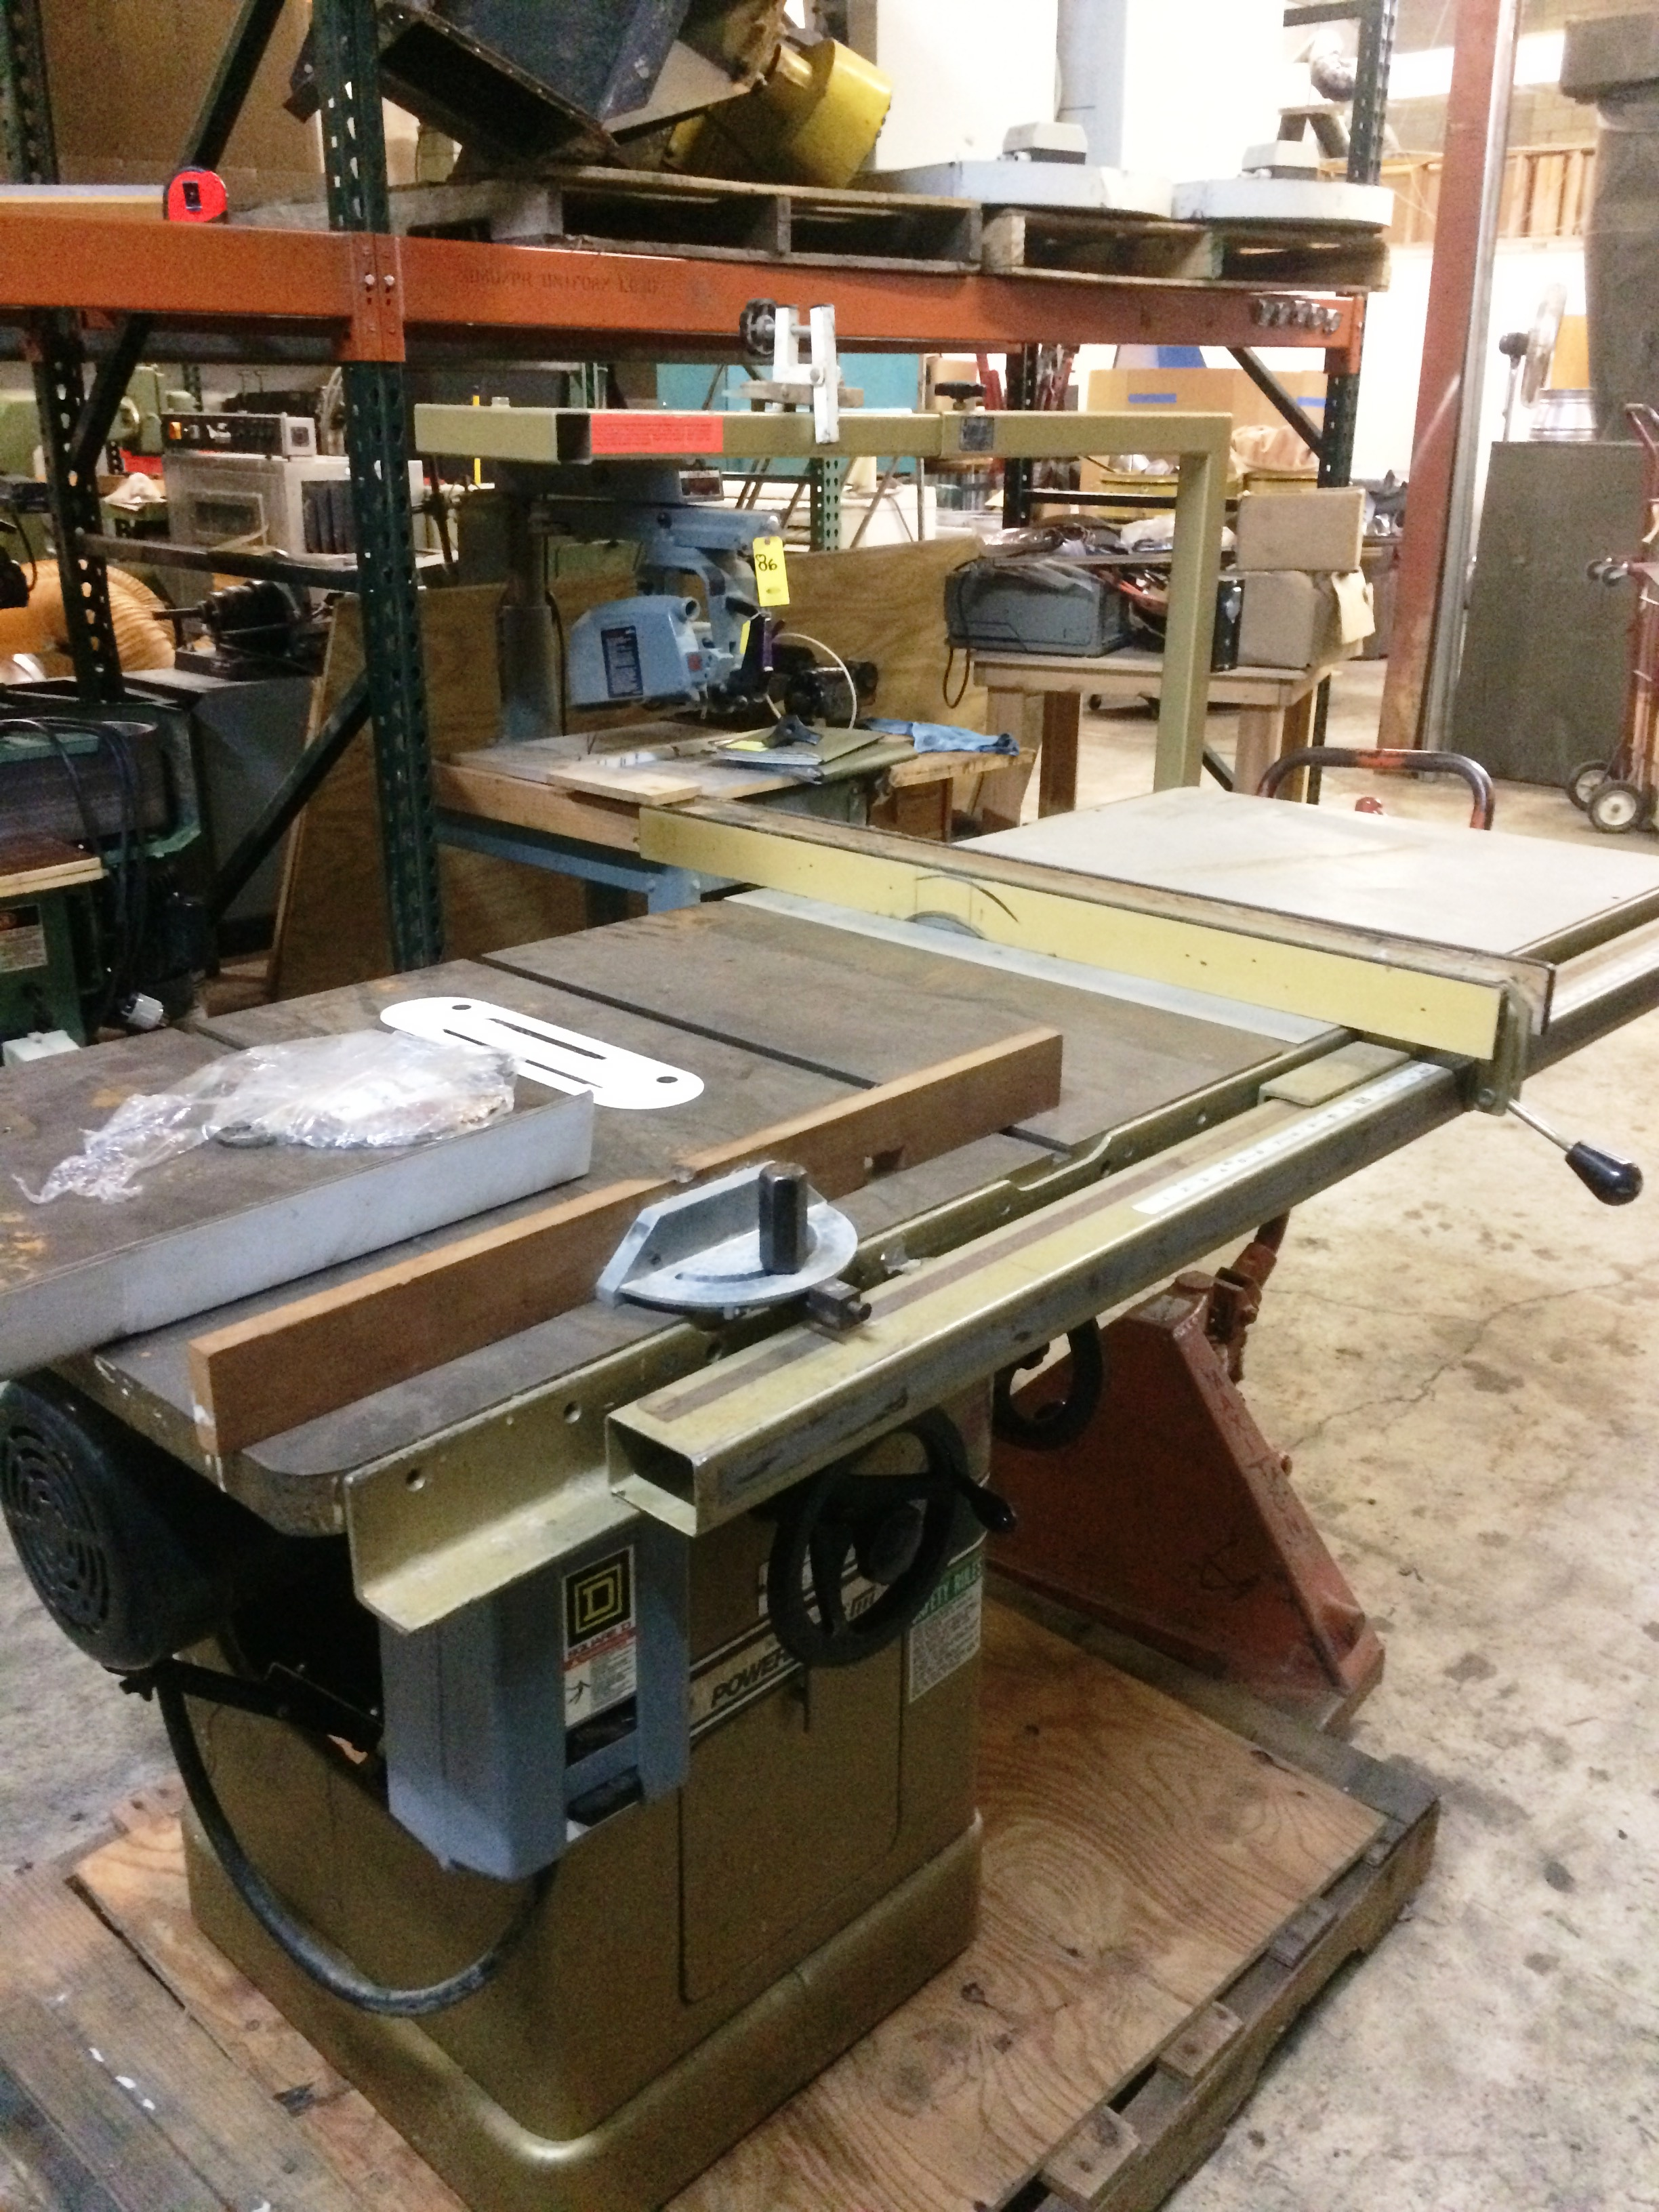 powermatic 66 table saw 3ph 2 kp walsh associates inc rh kp walsh com powermatic 66 table saw for sale powermatic 66 table saw craigslist